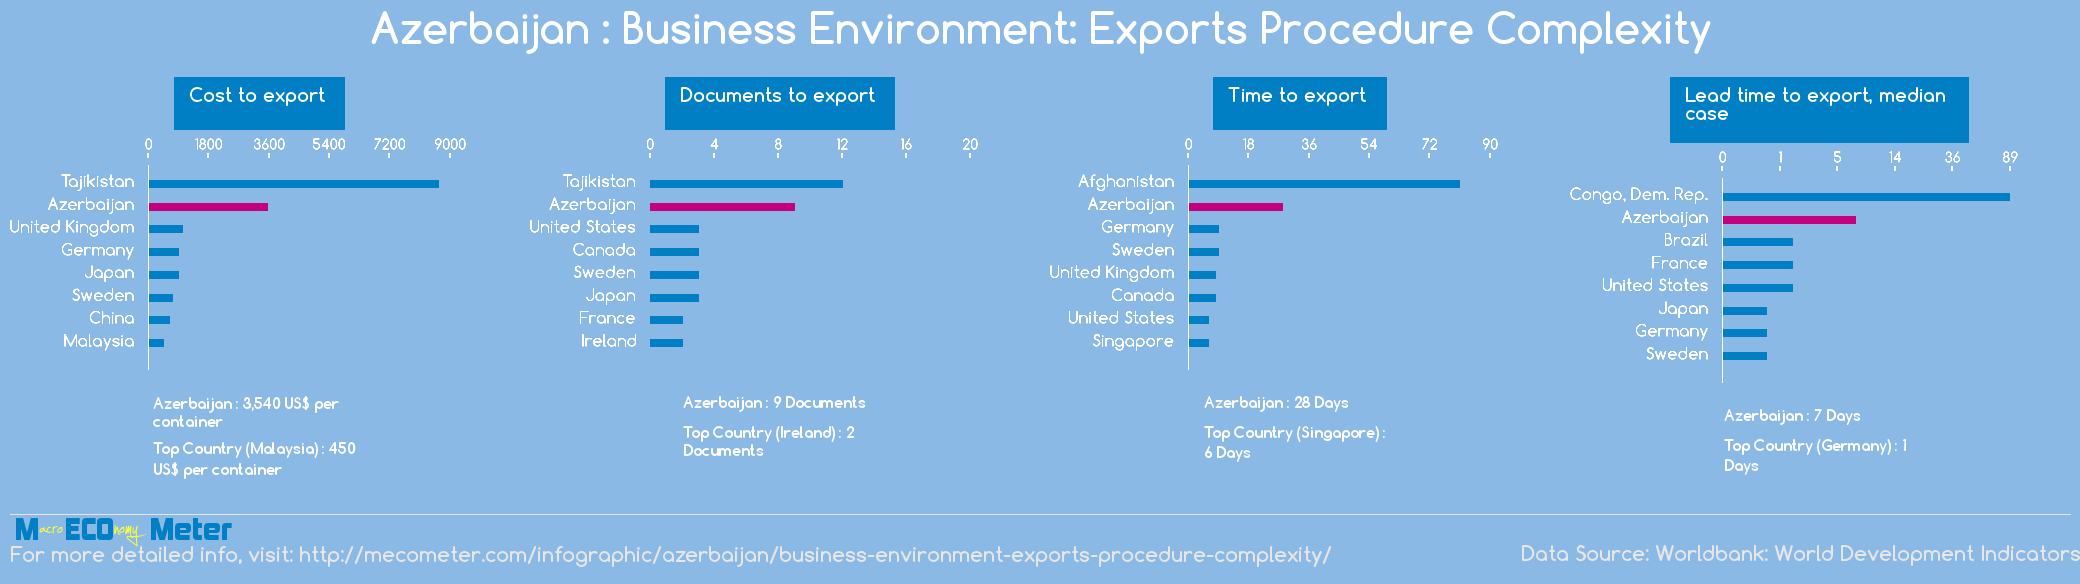 Azerbaijan : Business Environment: Exports Procedure Complexity